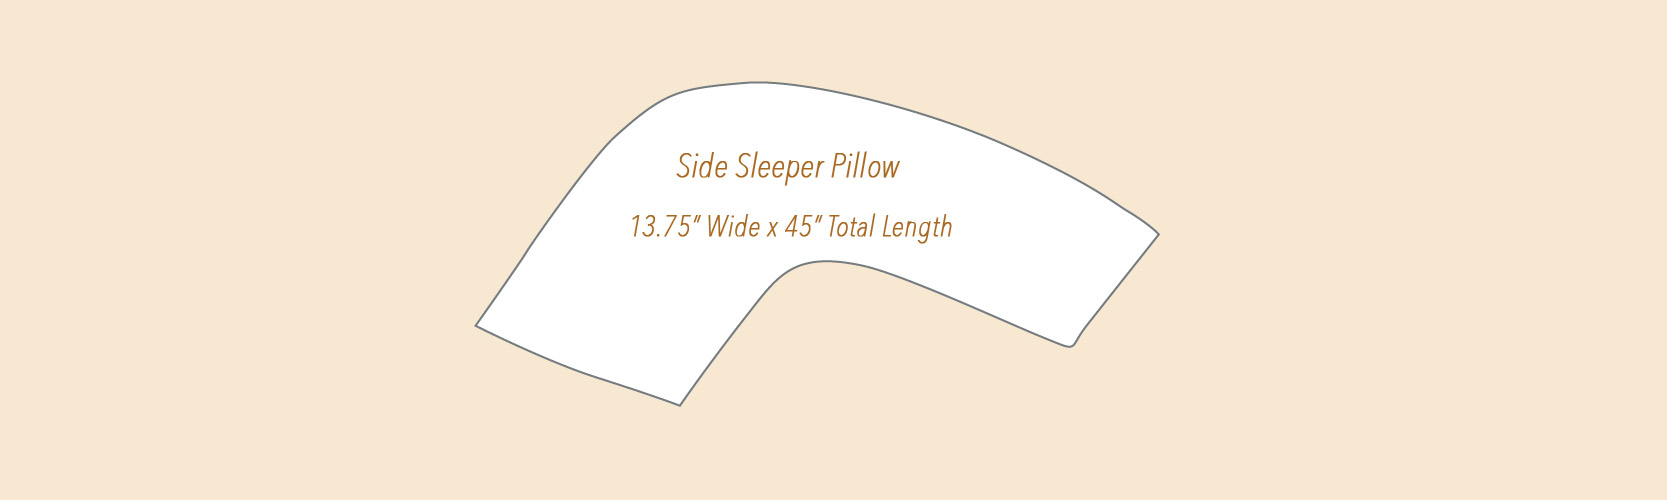 Side Sleepers Bed Pillows